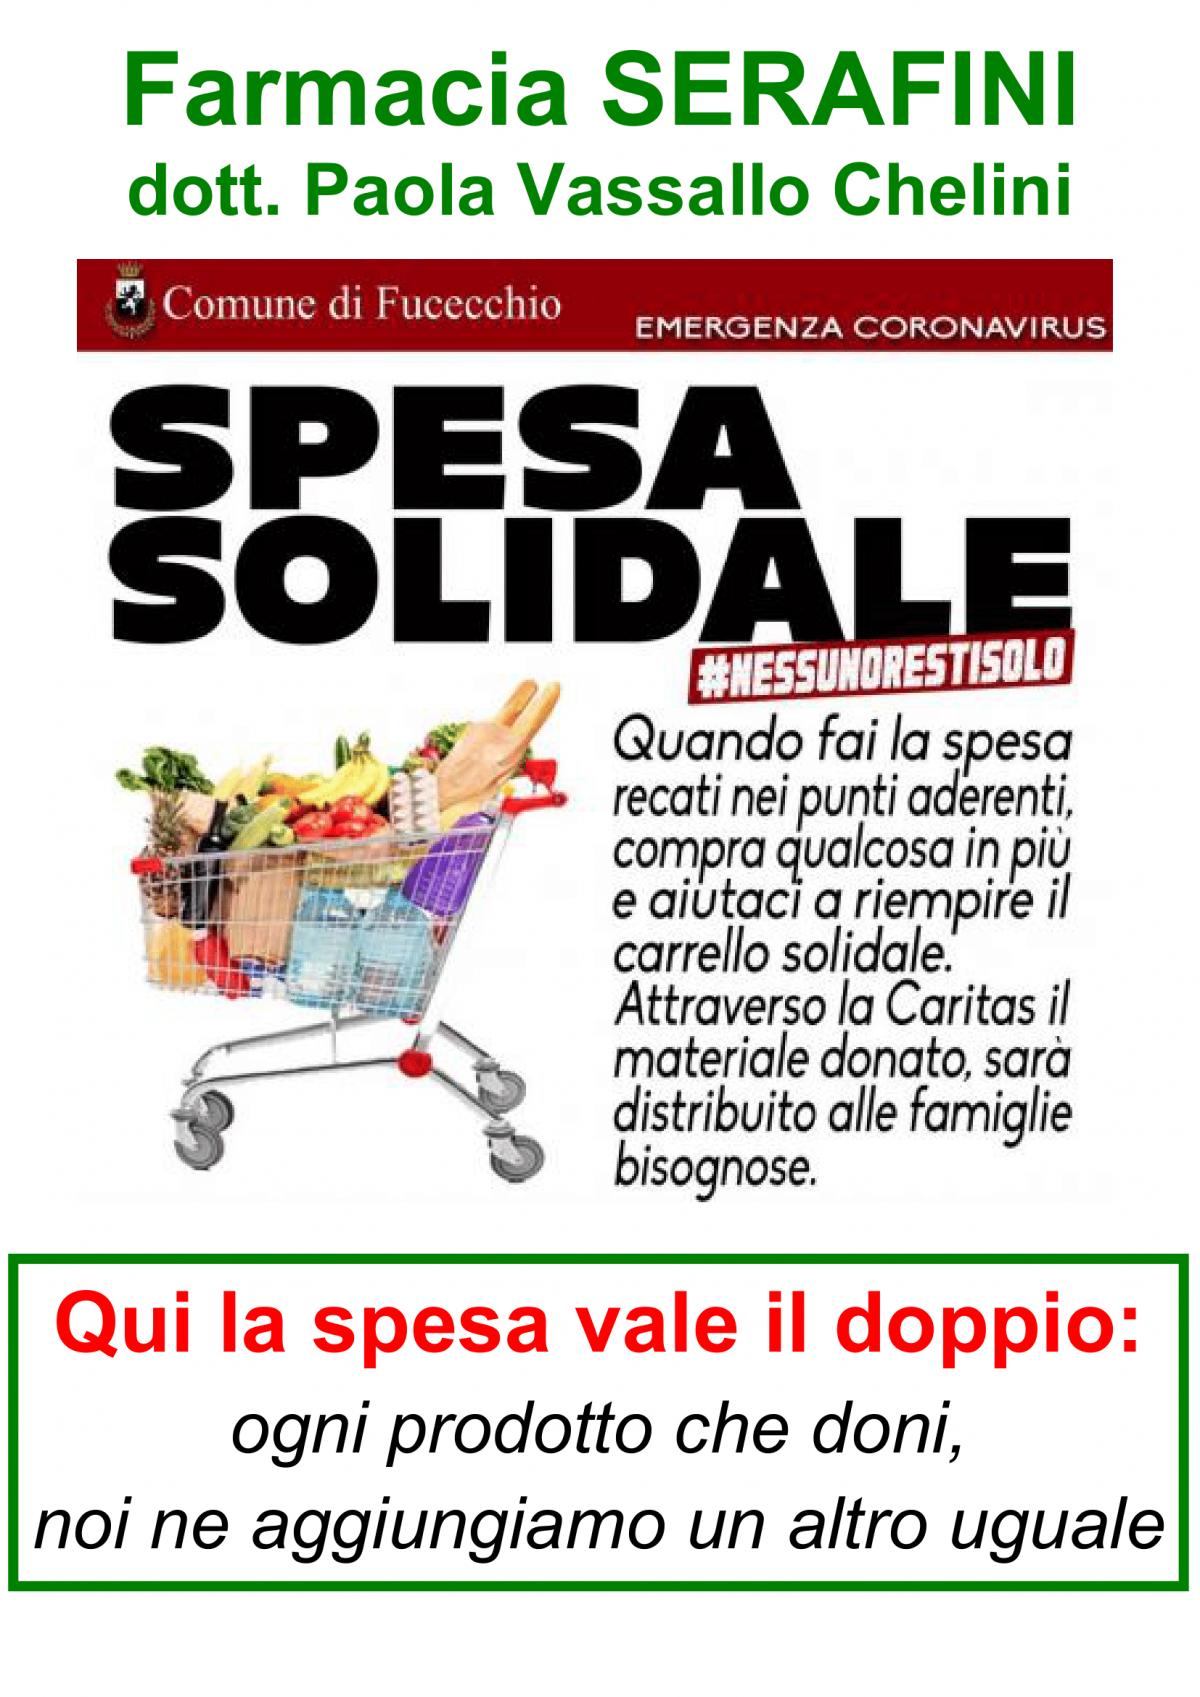 Spesa-solidale-1-1200x1697.png